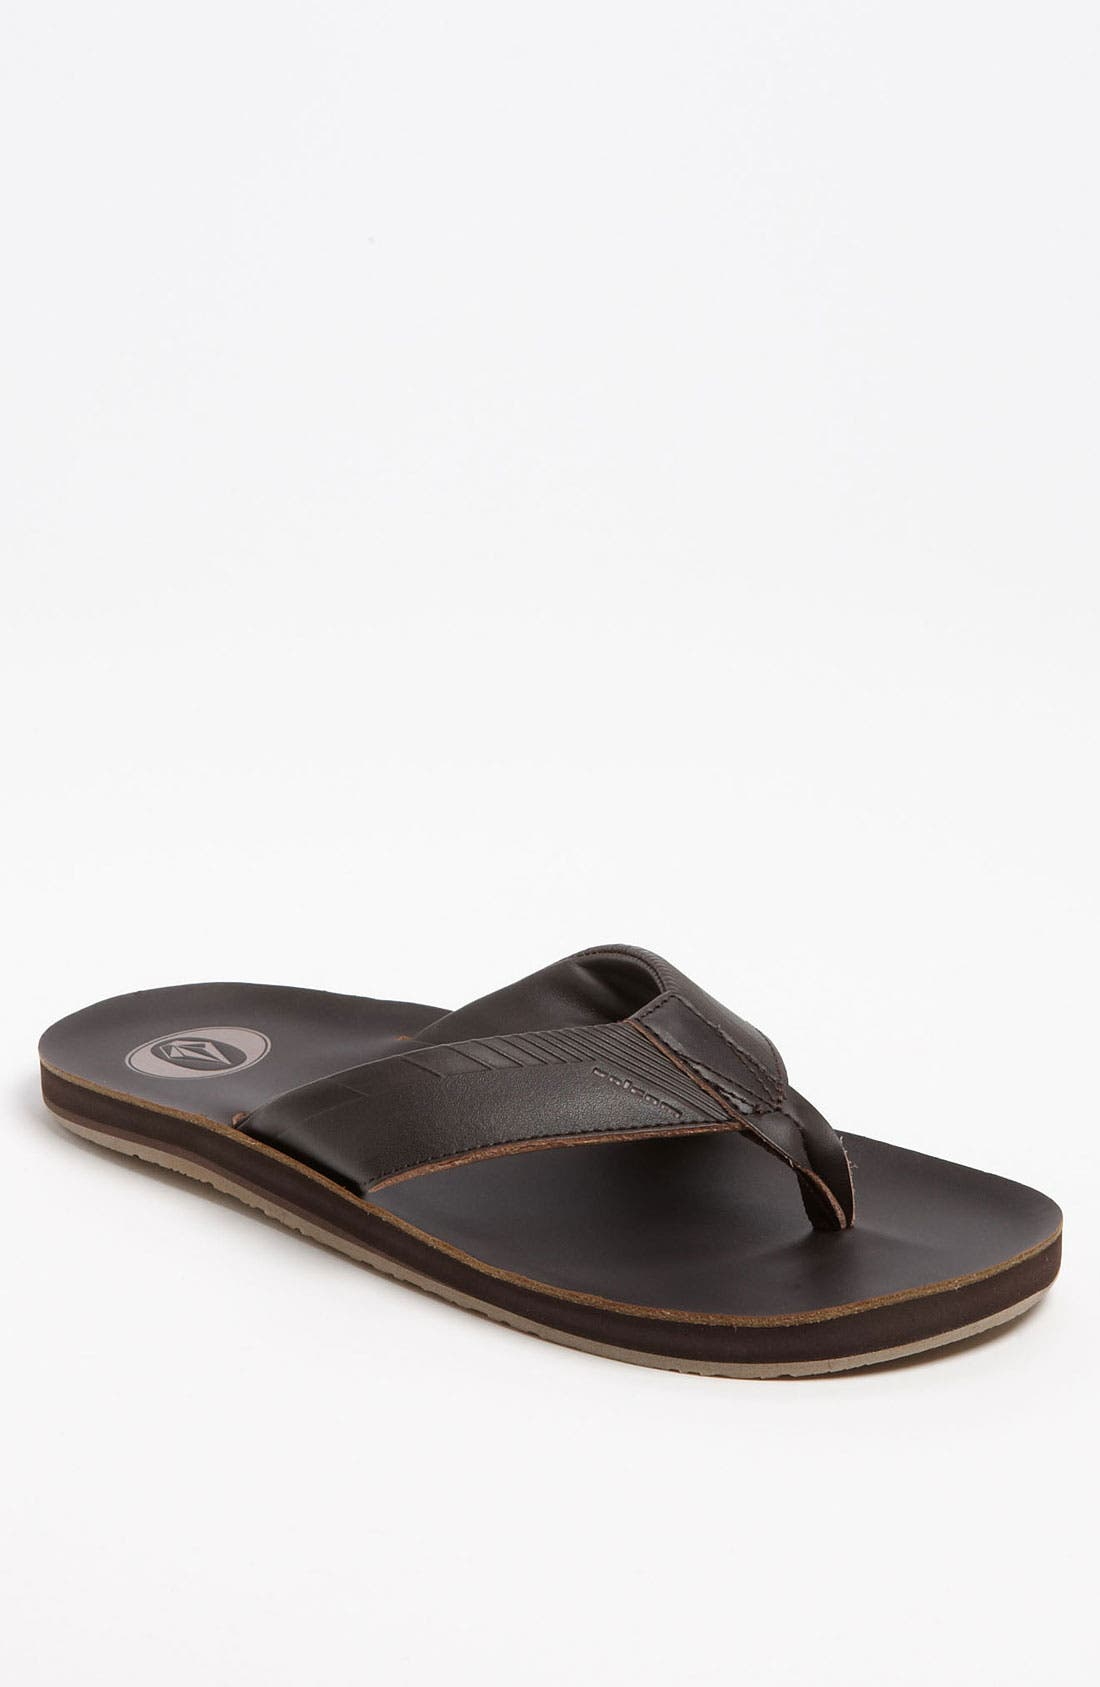 Main Image - Volcom 'Creedlers - Lector' Flip Flop